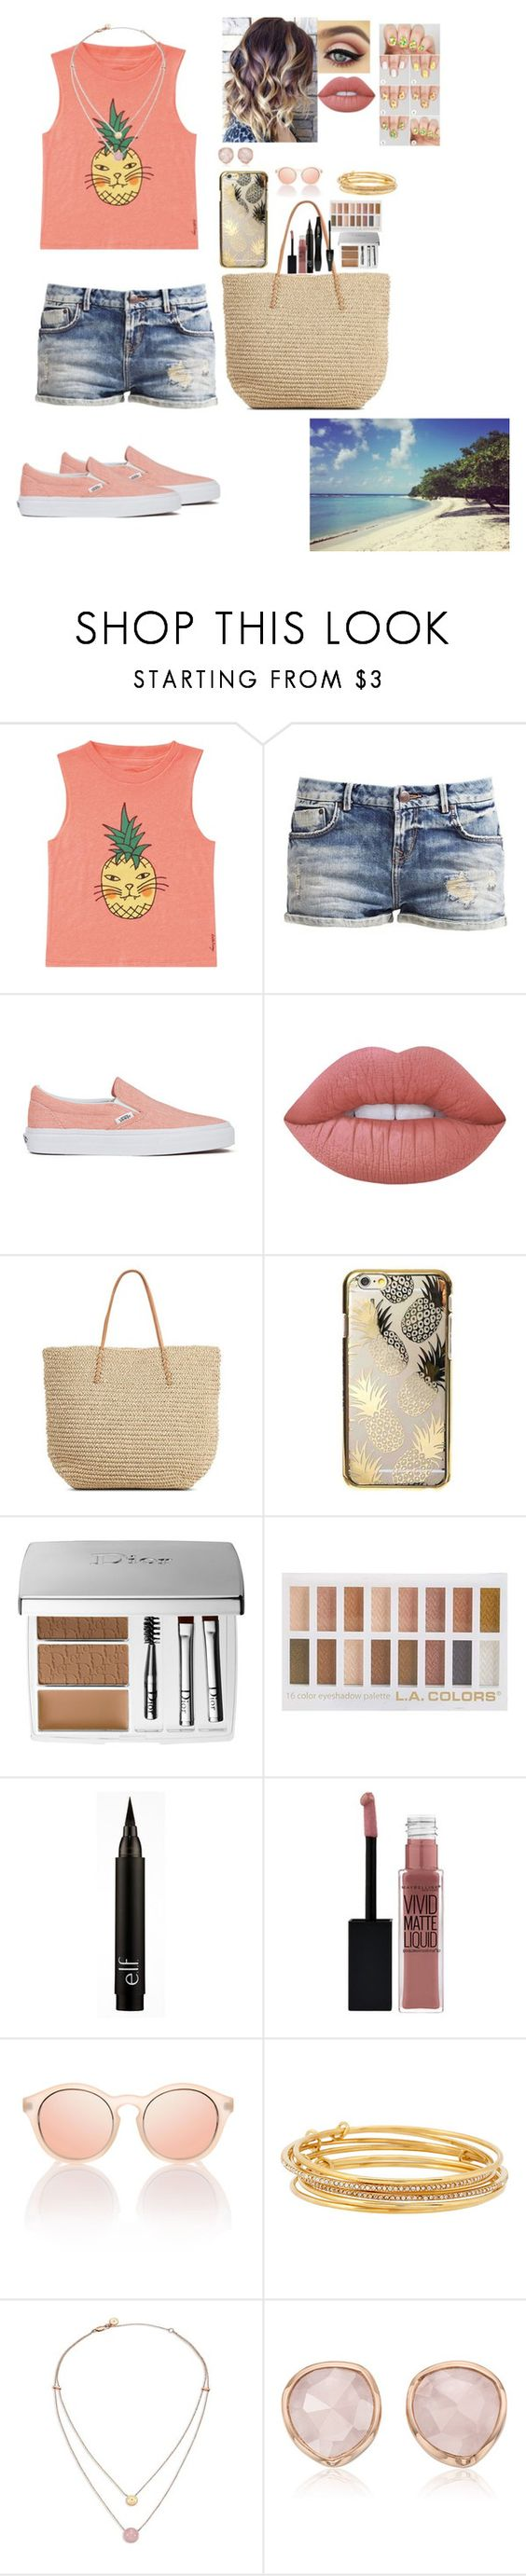 """Pineapple"" by d3rpydashie ❤ liked on Polyvore featuring Billabong, Vans, Lime Crime, Target, Skinnydip, Christian Dior, Lancôme, Maybelline, Kate Spade and Michael Kors"